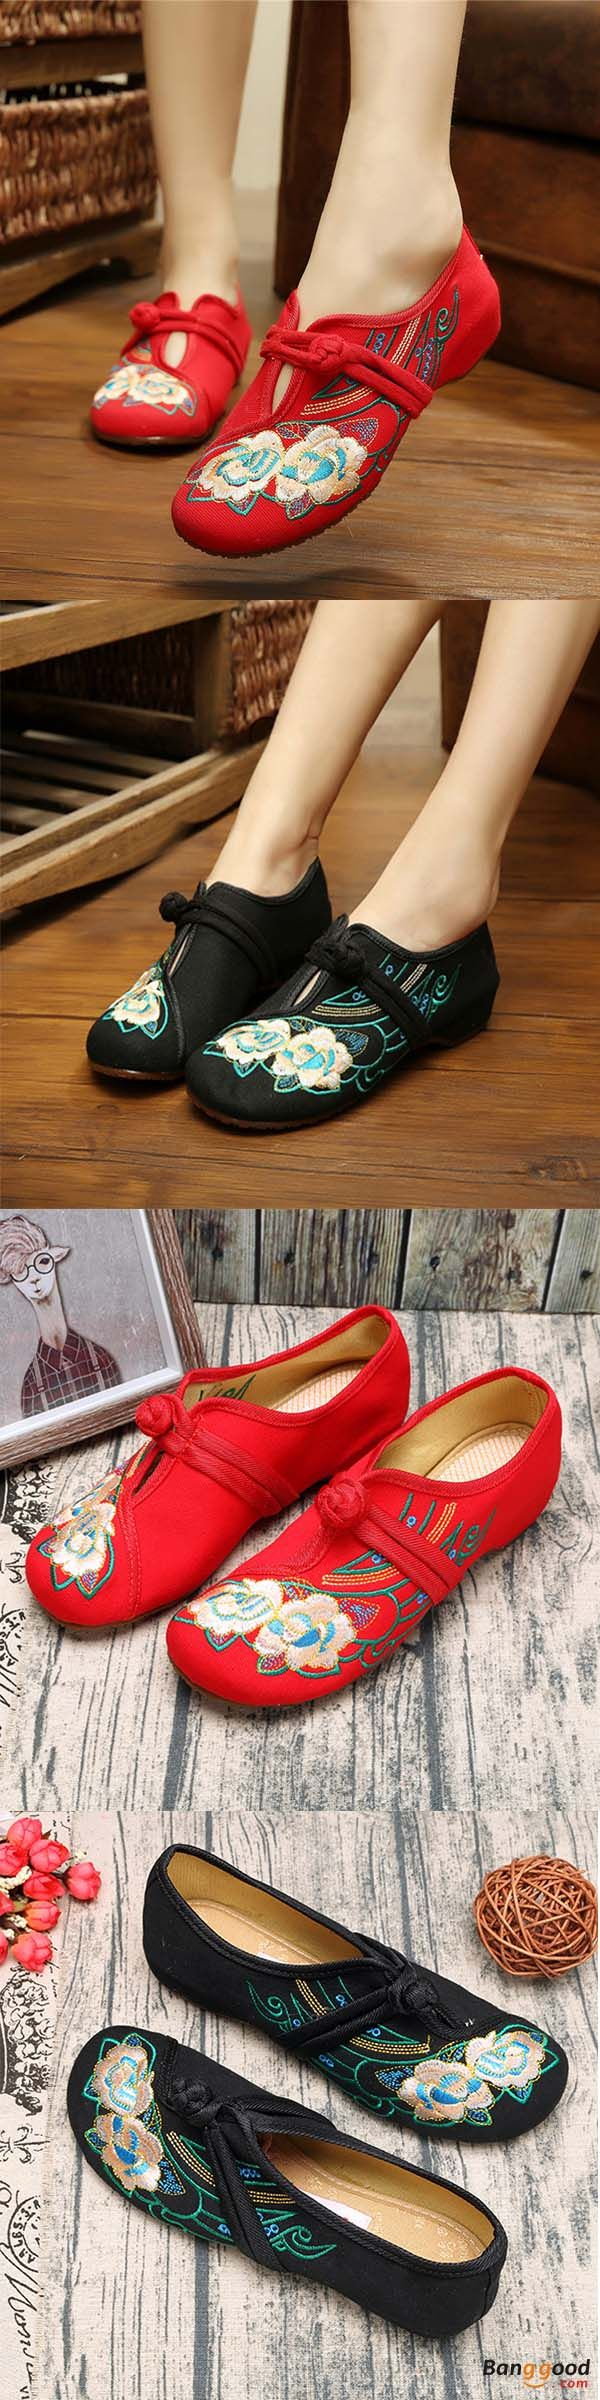 US$18.99 + Free shipping. Women Lace Up Cloth Chinese Embroidered Flower Flat Loafers. Upper Material: Cloth. Shop now!